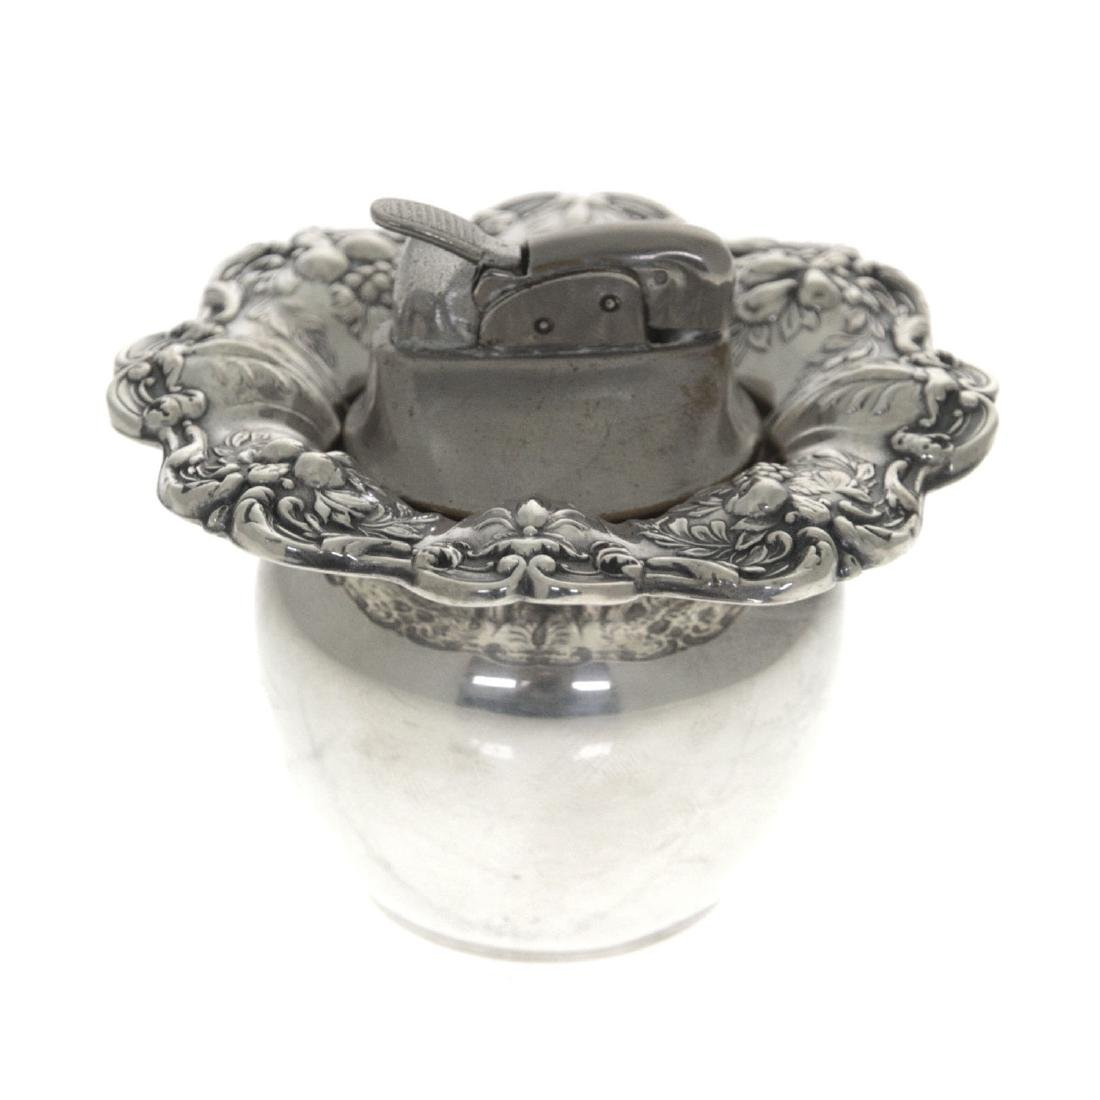 Reed & Barton Sterling Silver Table Lighter.